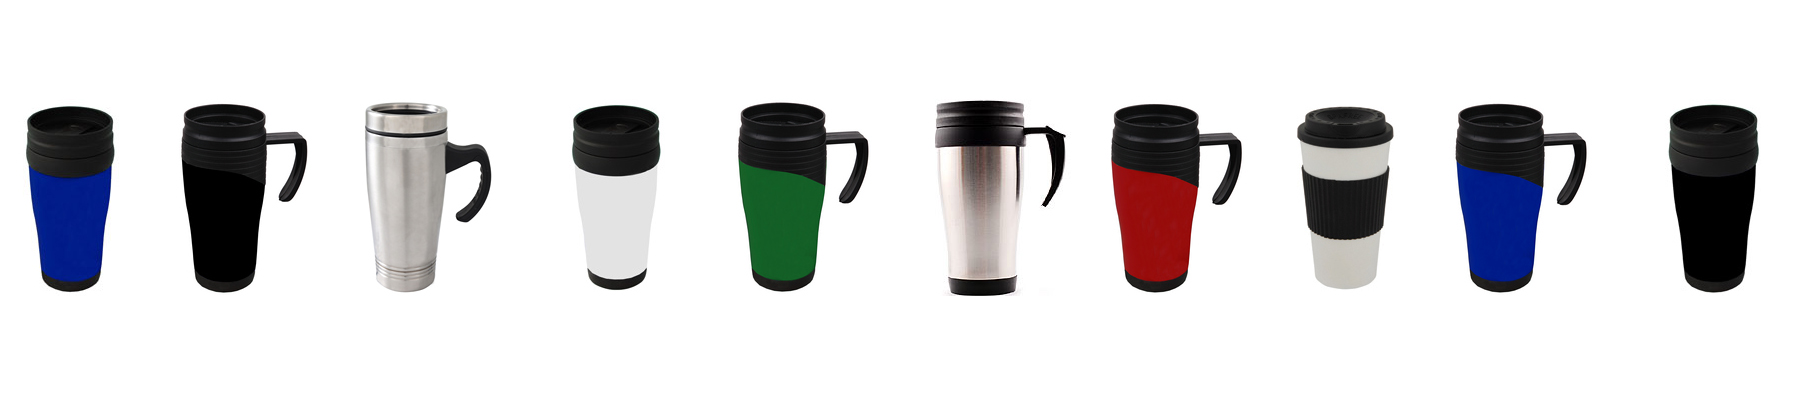 Brand Innovation by Thermal Mugs